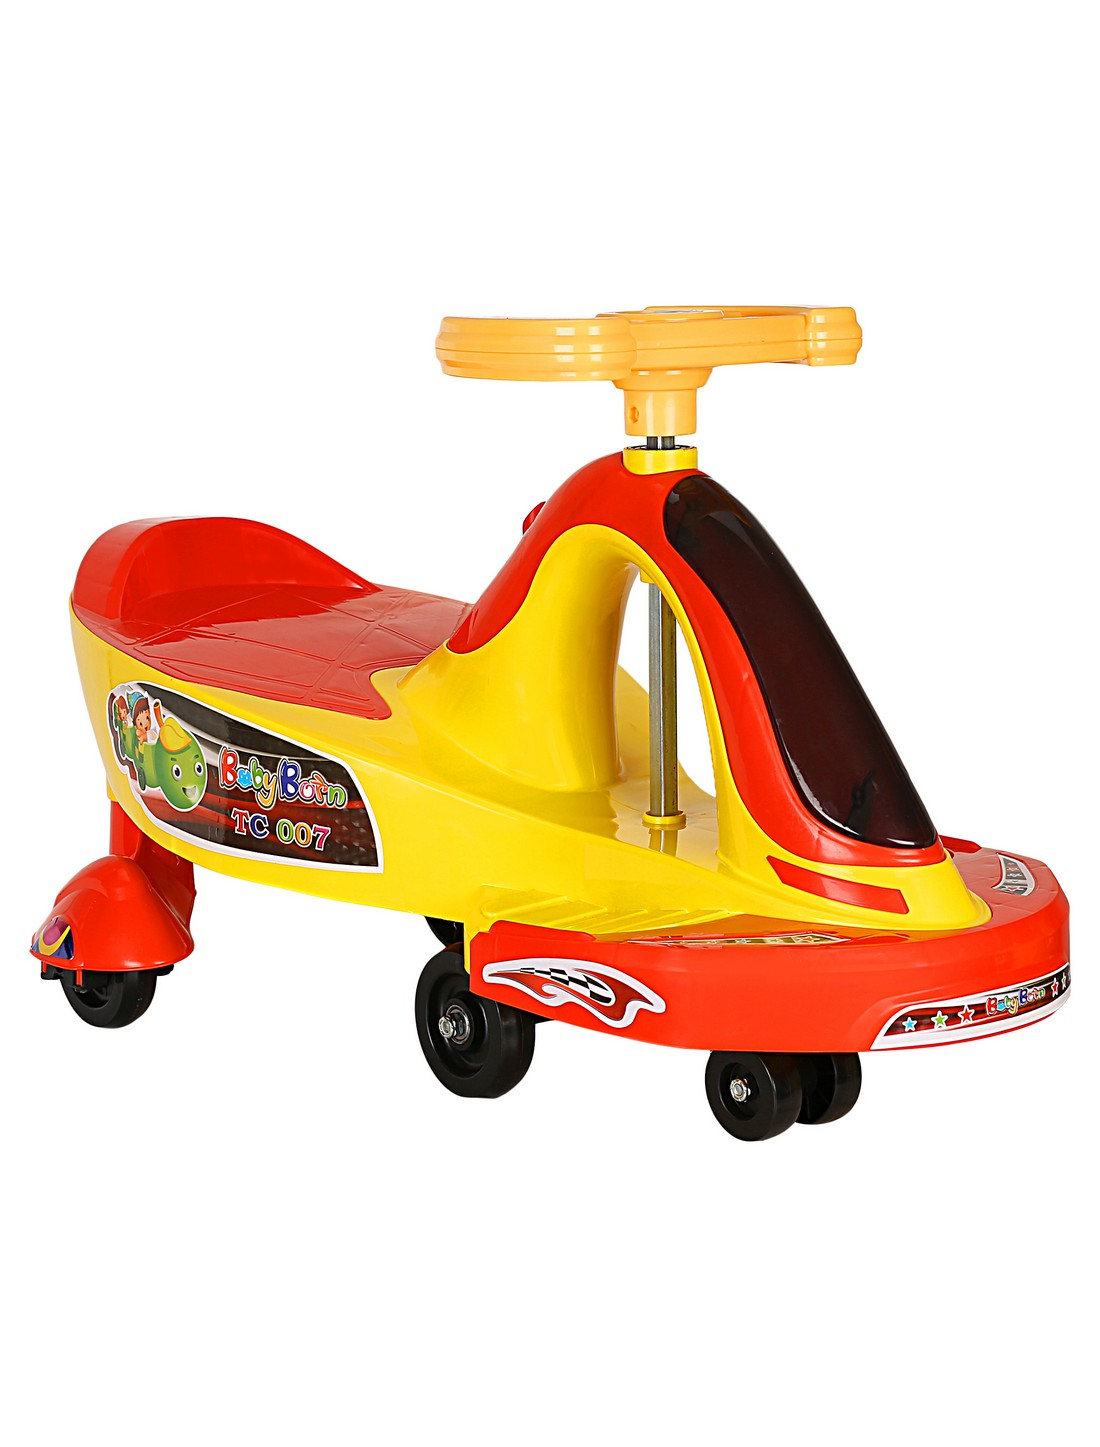 CREATURE | Creature Yellow Twist Ride-On Cars Toy Vehicle for Kids